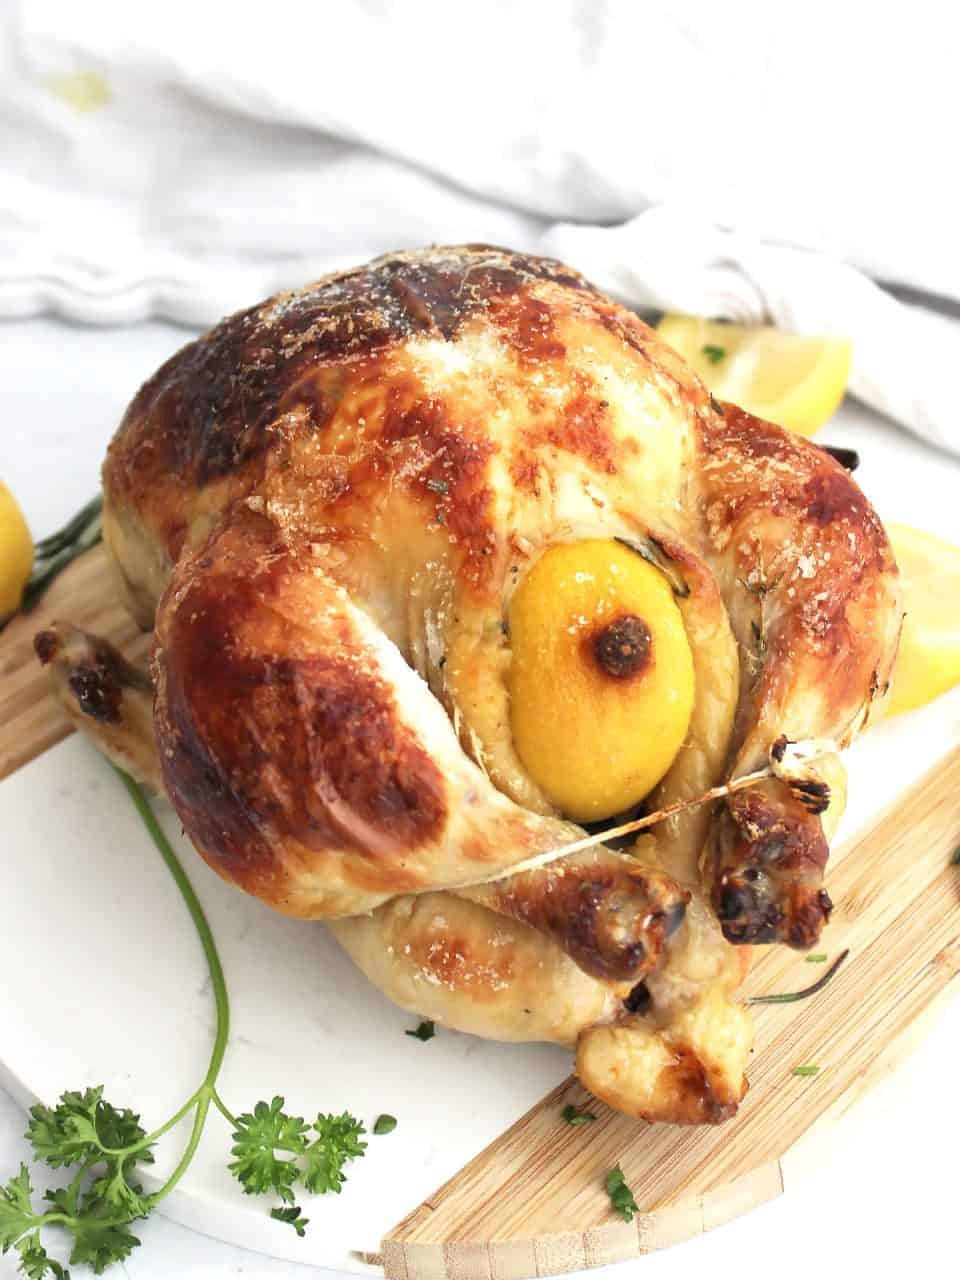 A whole roasted buttermilk chicken with legs trussed together next to fresh herbs and lemons on a chopping board.